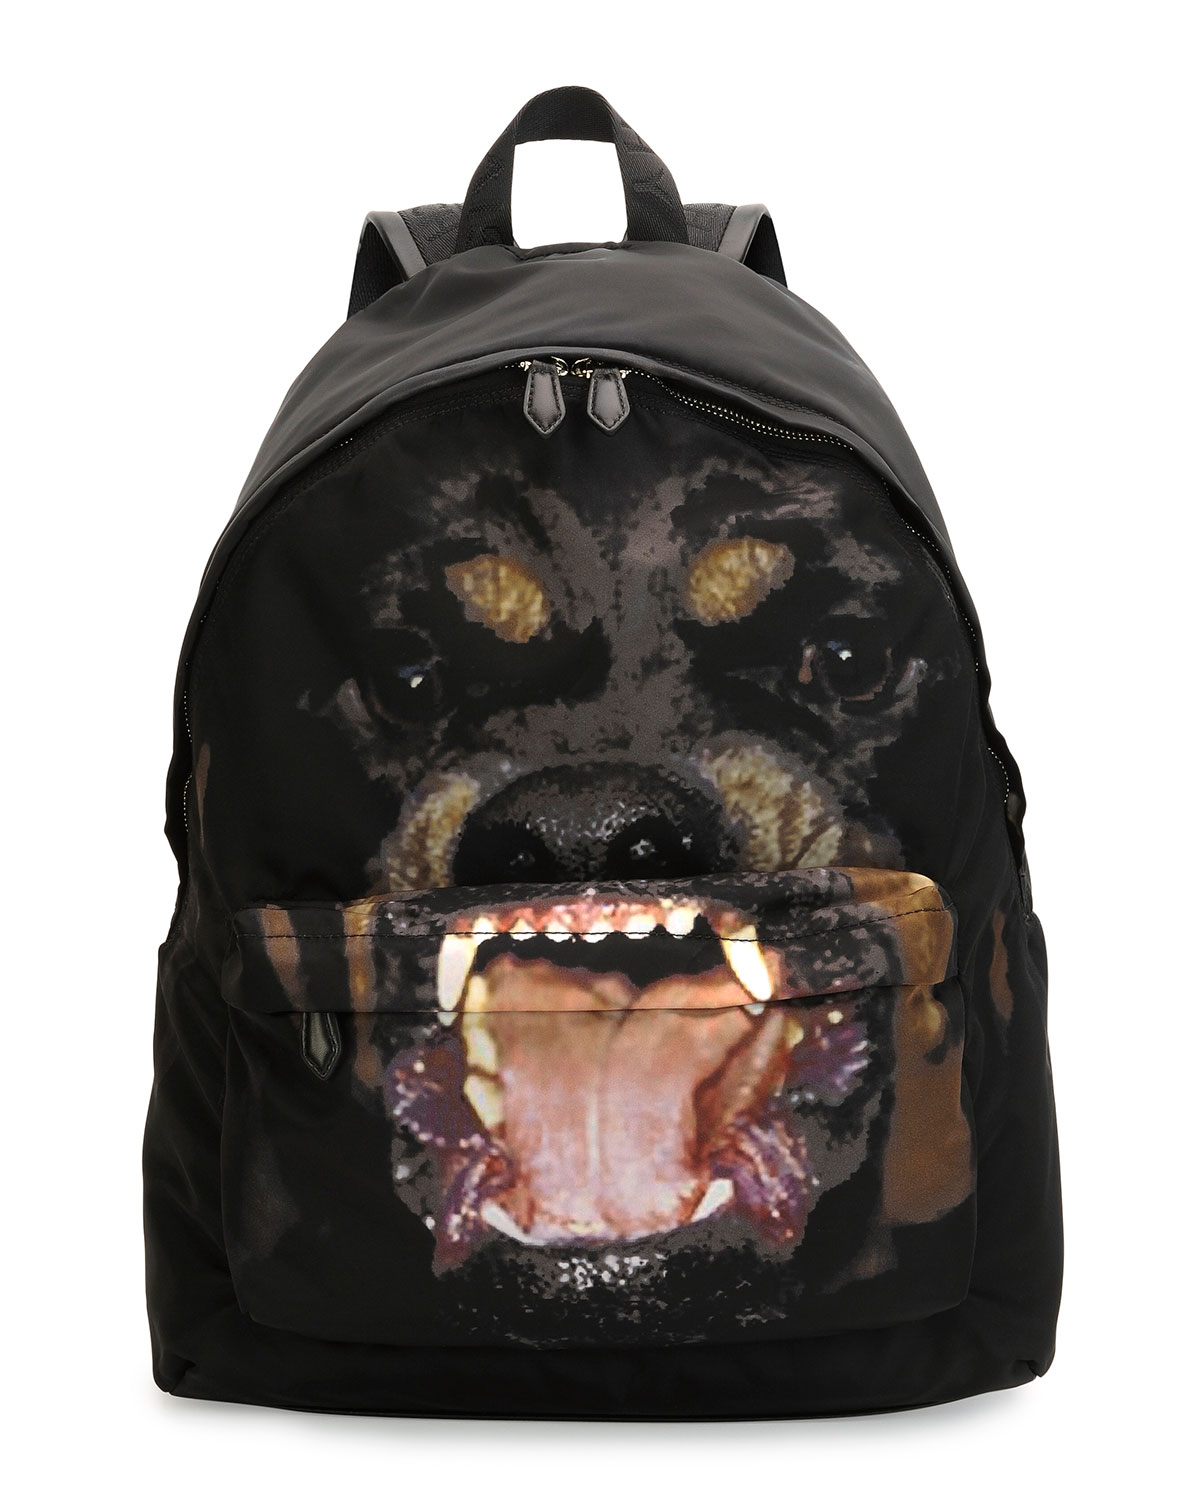 Givenchy Rottweiler Nylon Backpack d62a745169520